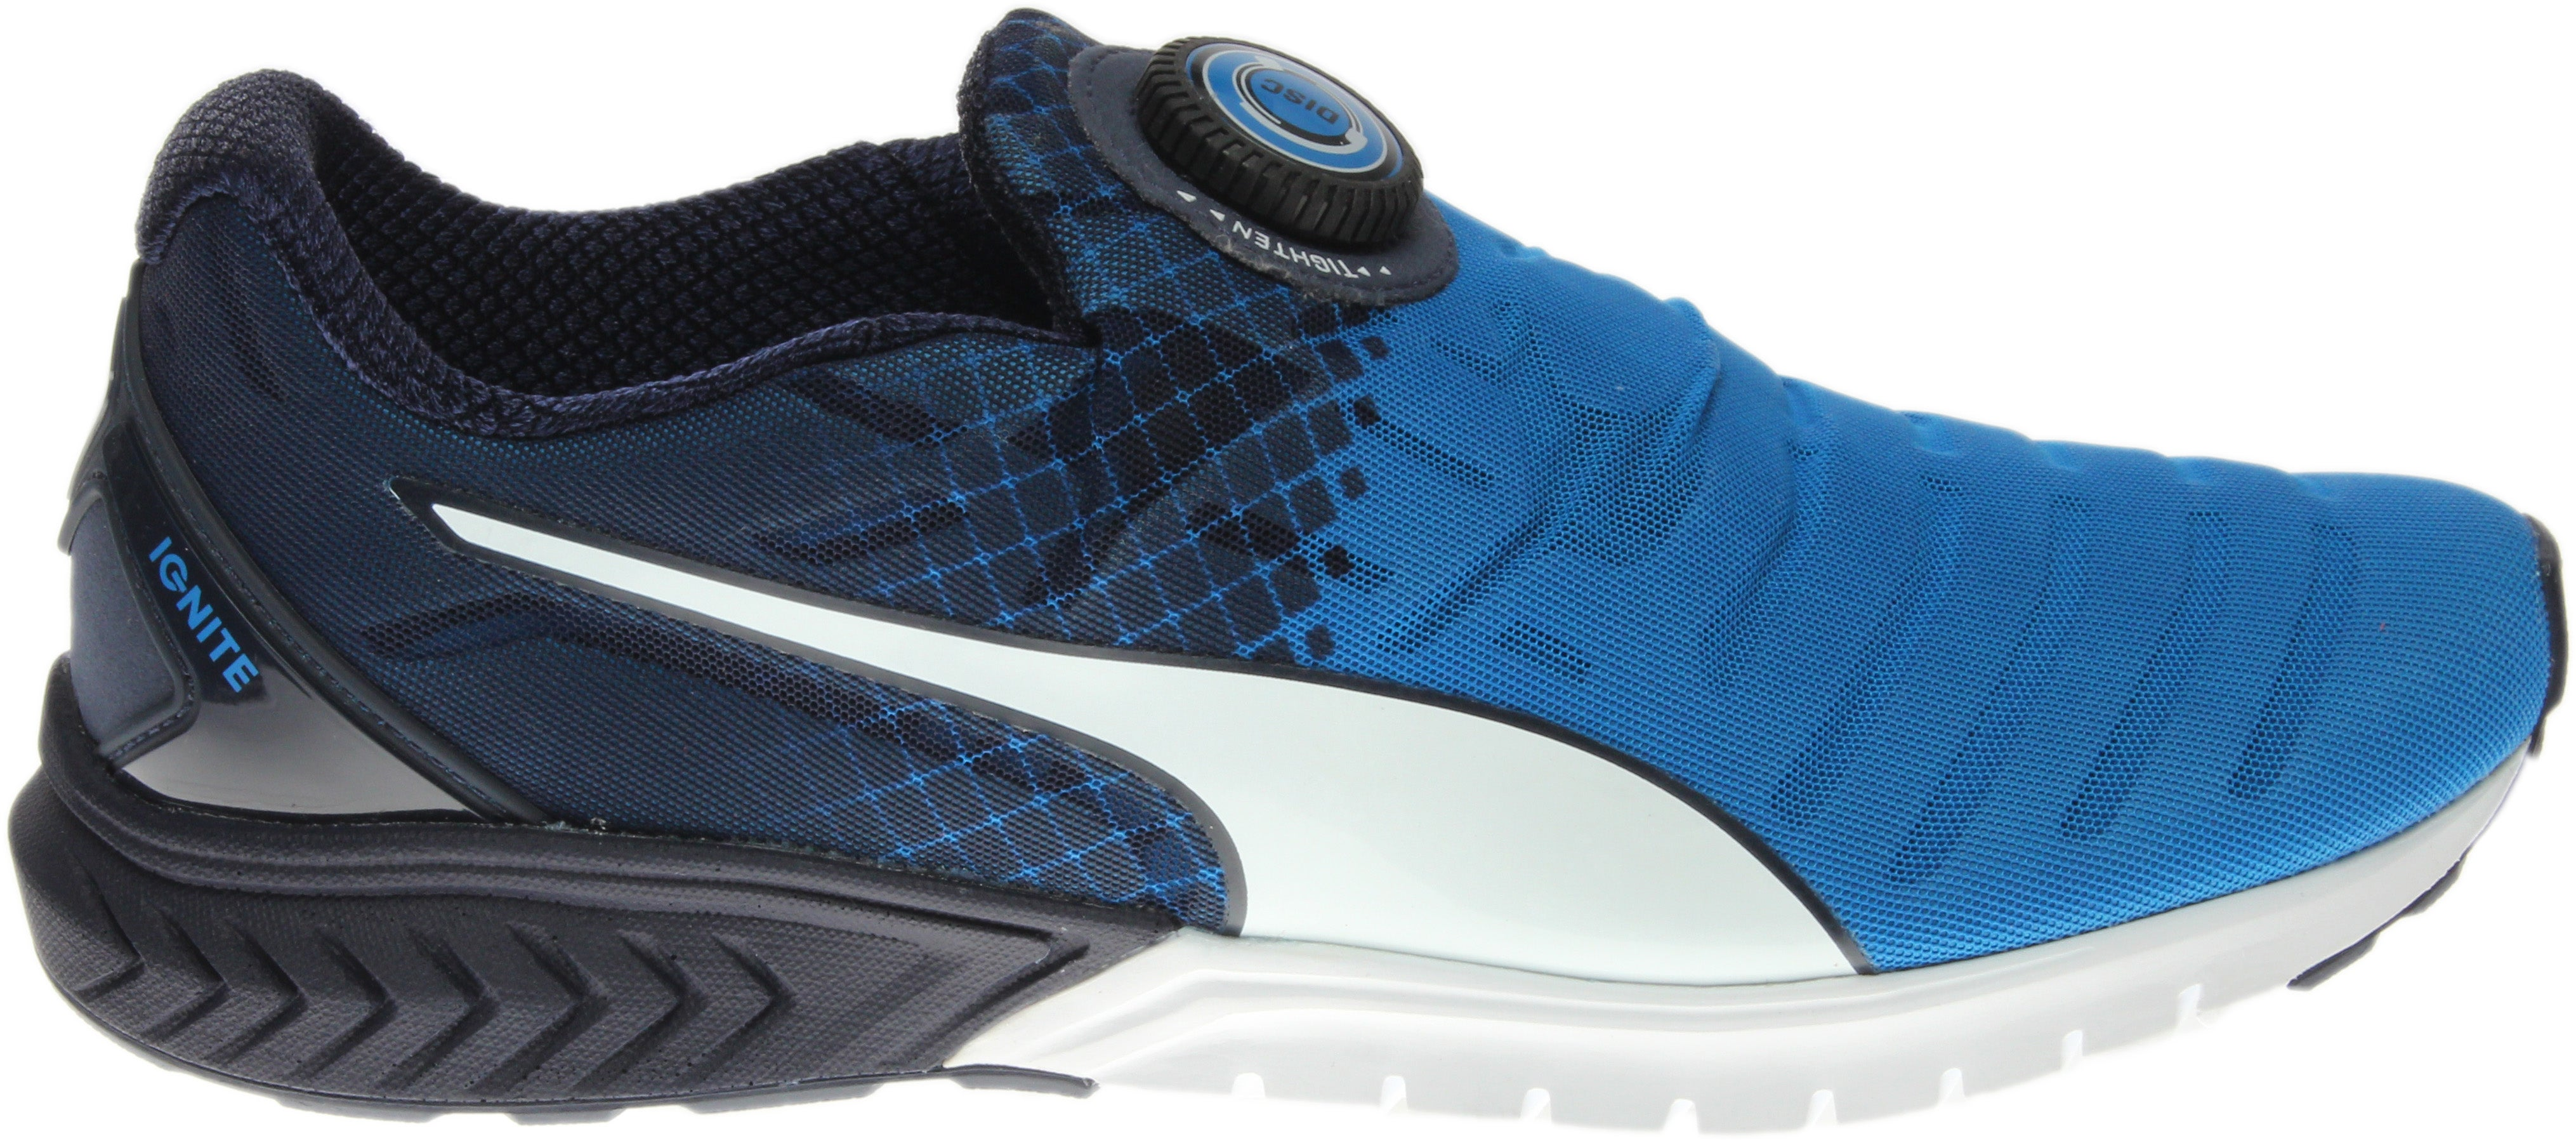 Puma Ignite Dual Disc Blue - Mens  - Size